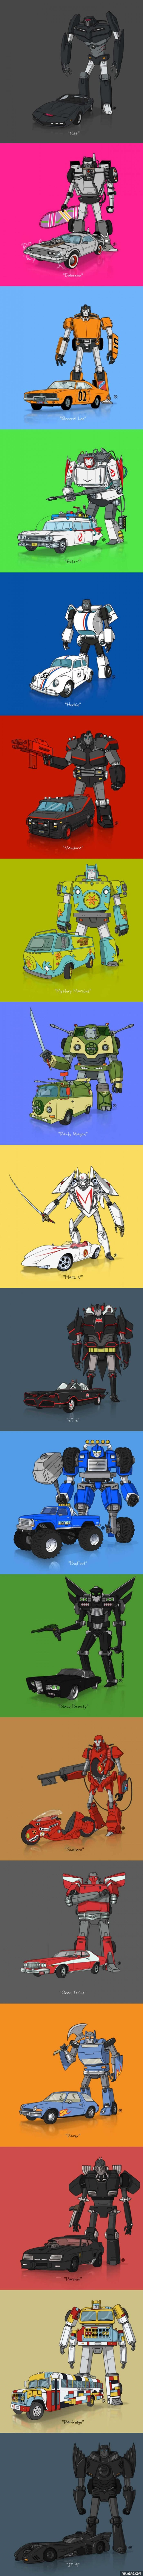 If popular vehicles were Transformers ... By Darren Rawlings.